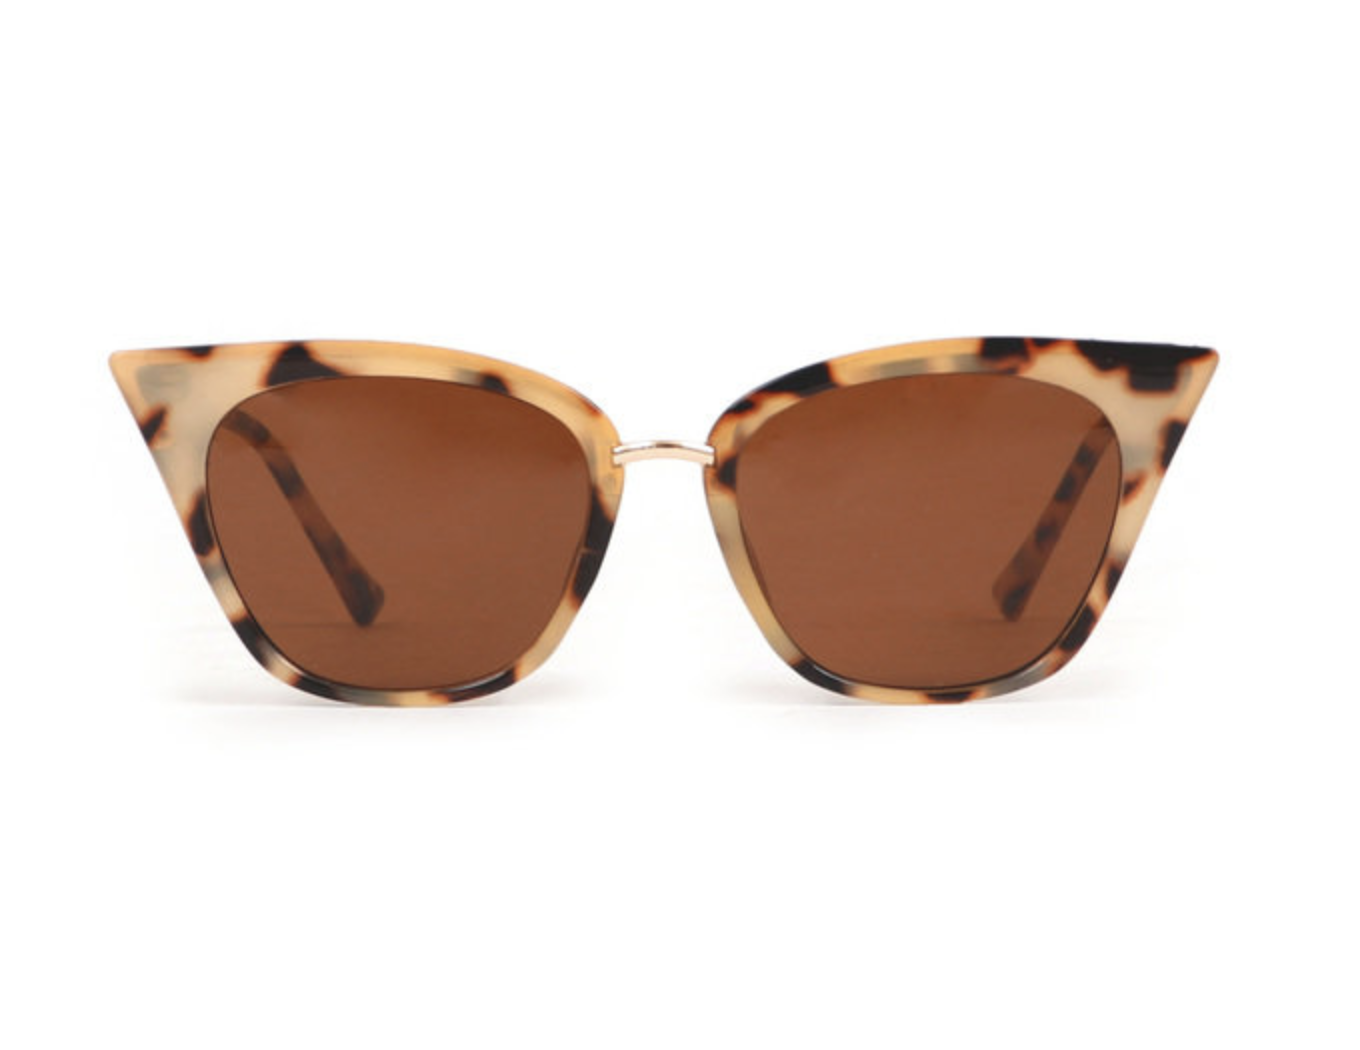 Powder Sophia Sunglasses